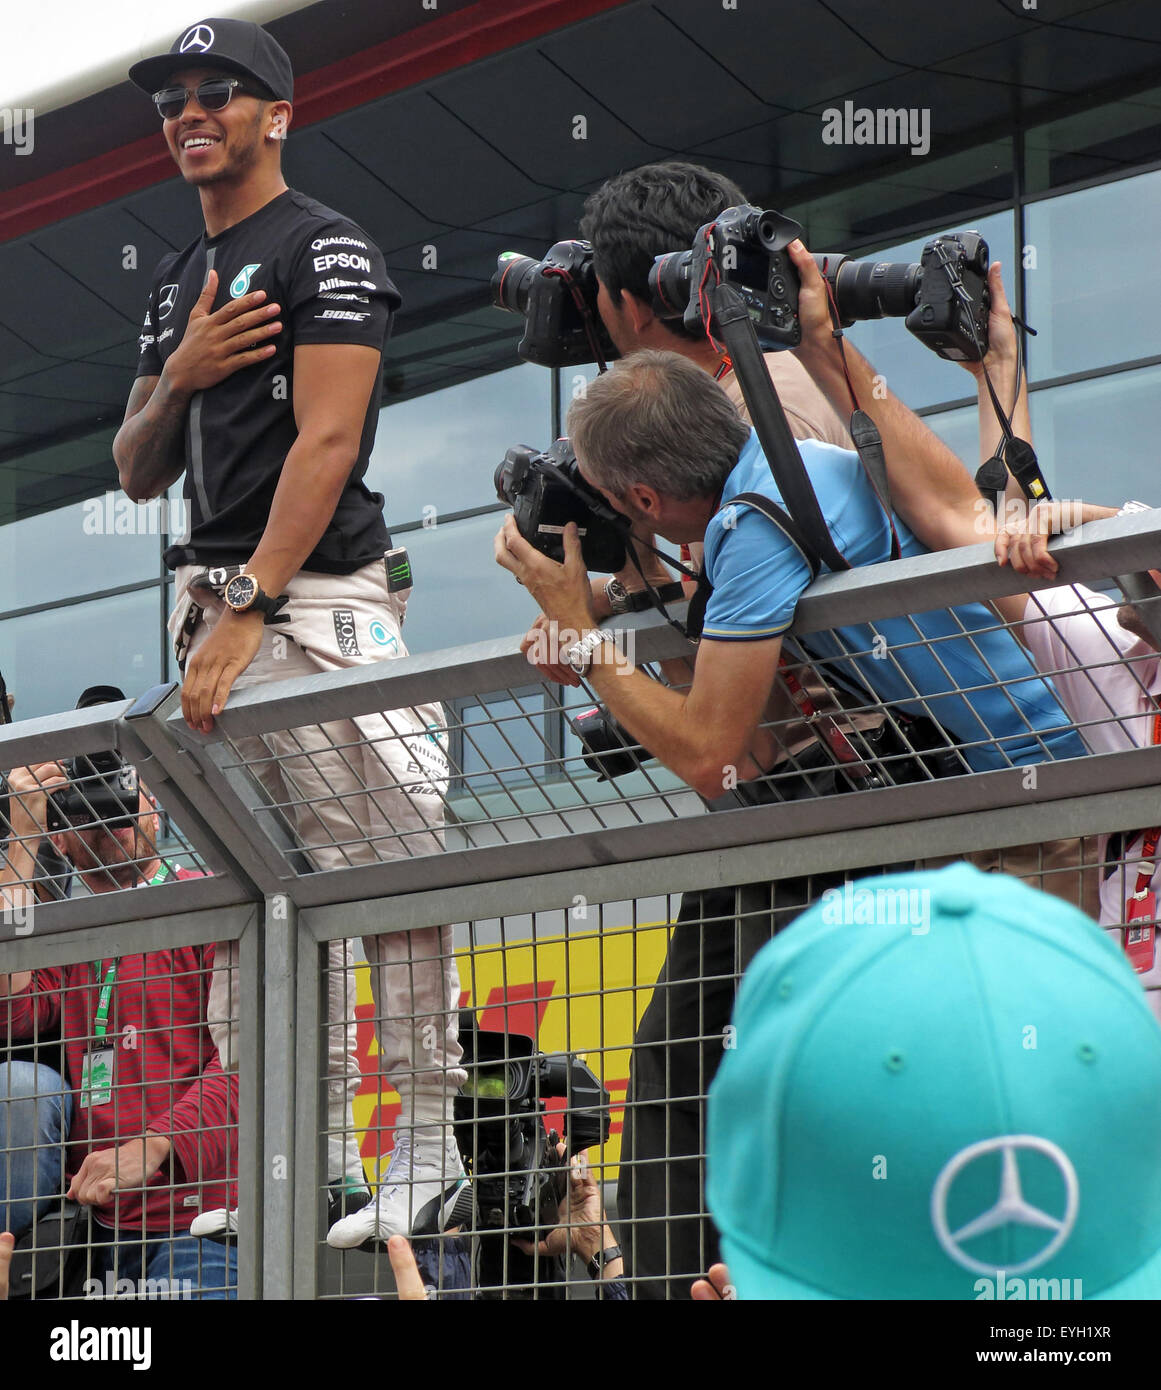 Lewis,Hamilton,standing,on,fence,camera,cameras,journalist,journalists,people,smiling,smiles,winner,racing,driver,Motorsport,motor,sport,GoTonySmith,Buy Pictures of,Buy Images Of